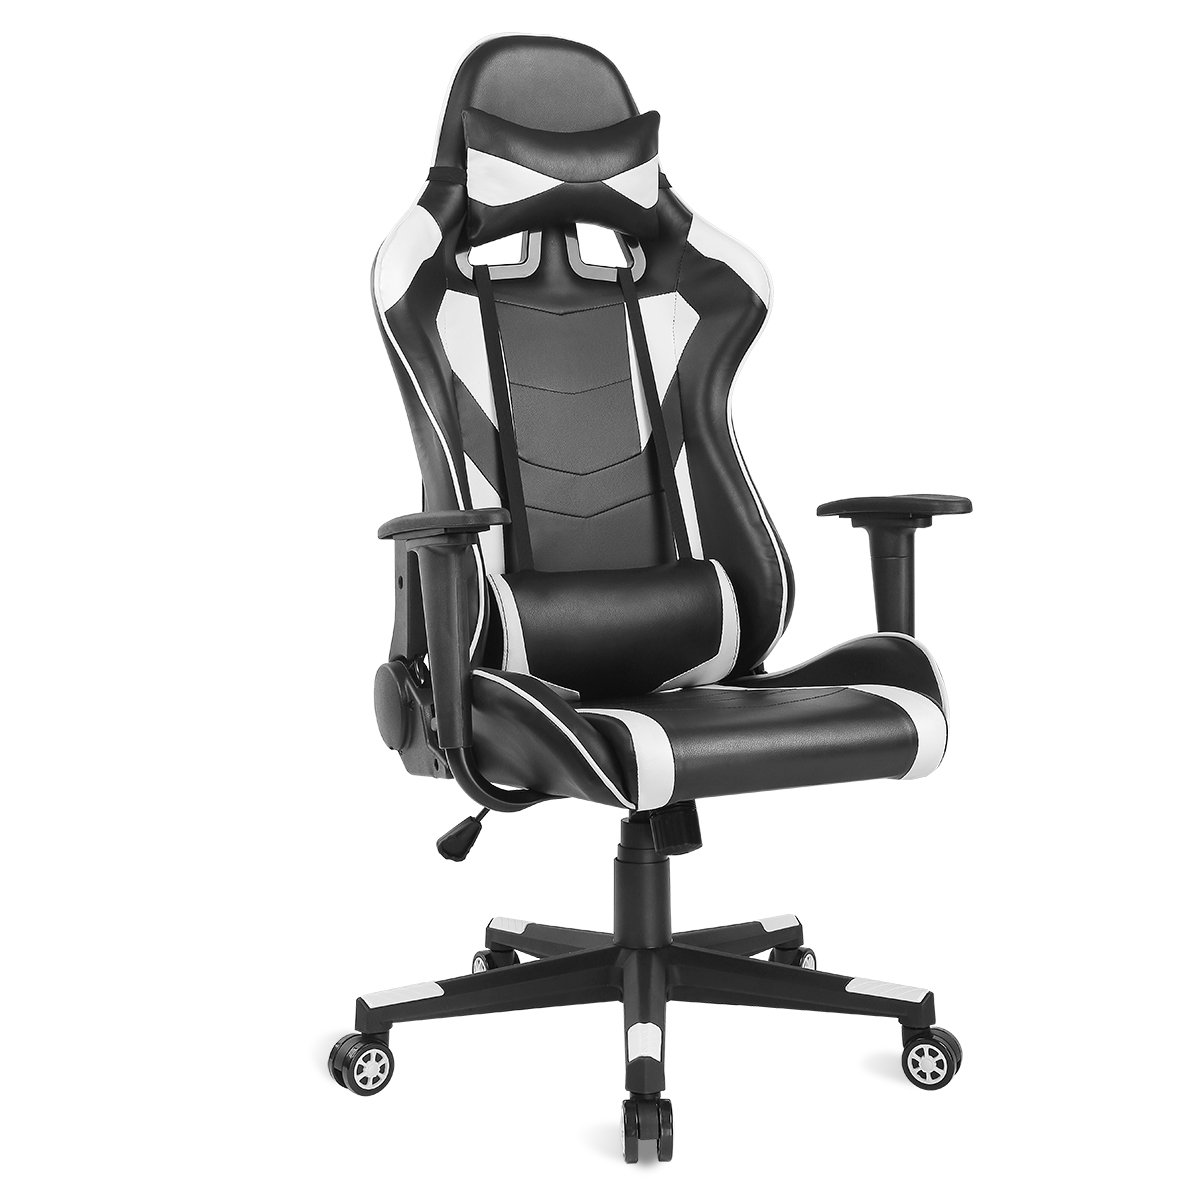 Auag Gaming Chair Office Chair Computer Desk Chair PC Ergonomic Office Chair Floor Gaming Chair Adults High Back PU Leather Adjustable Swivel Video Game Chair Headrest Lumbar Support Pillows Blue